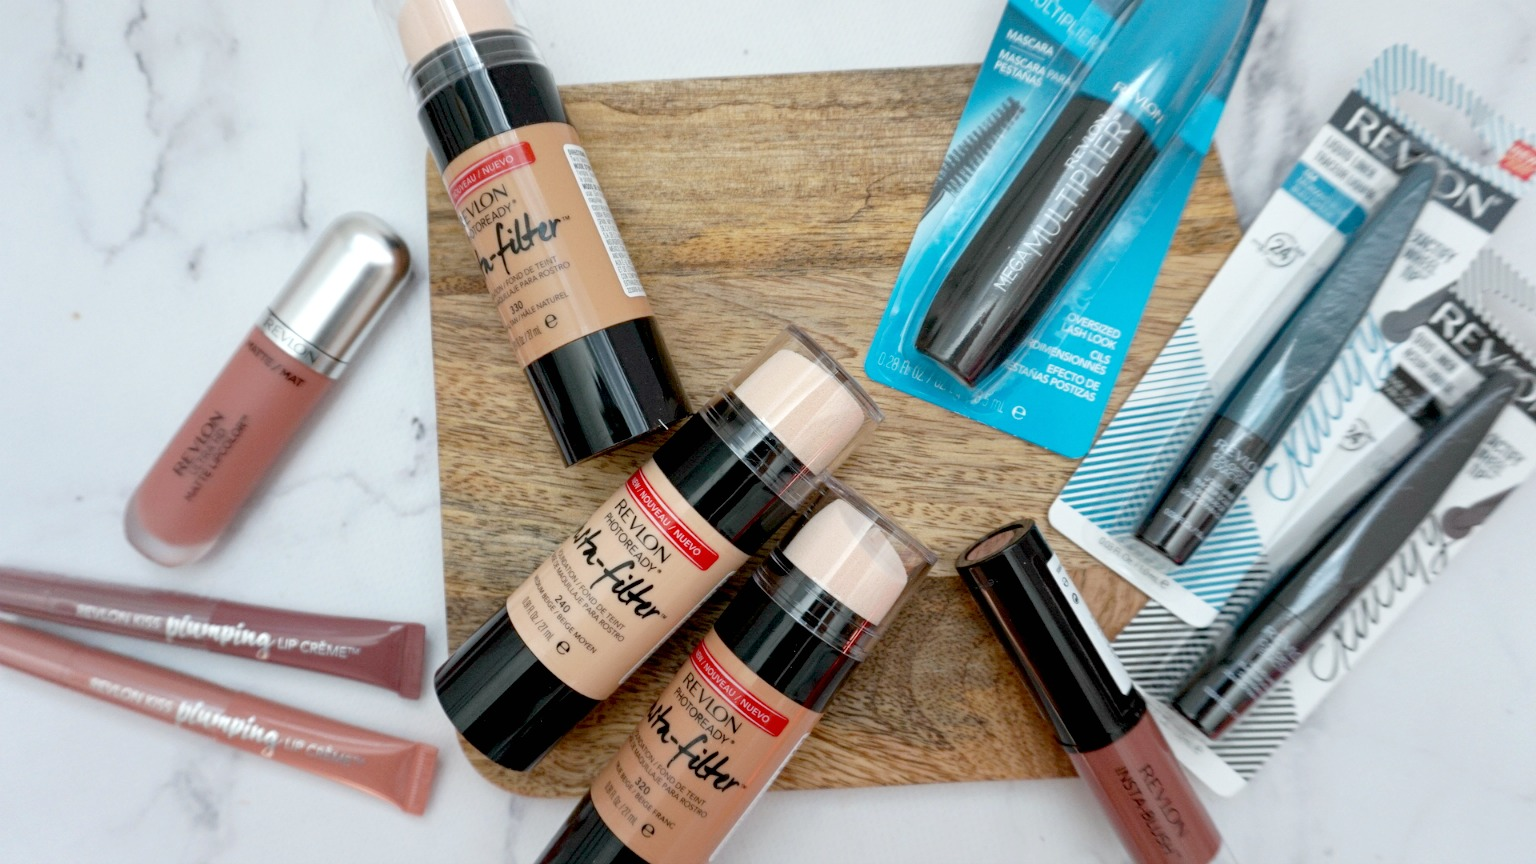 17bd627fa77 Review: Revlon Photoready Insta-Filter Foundation & more* - miranda ...